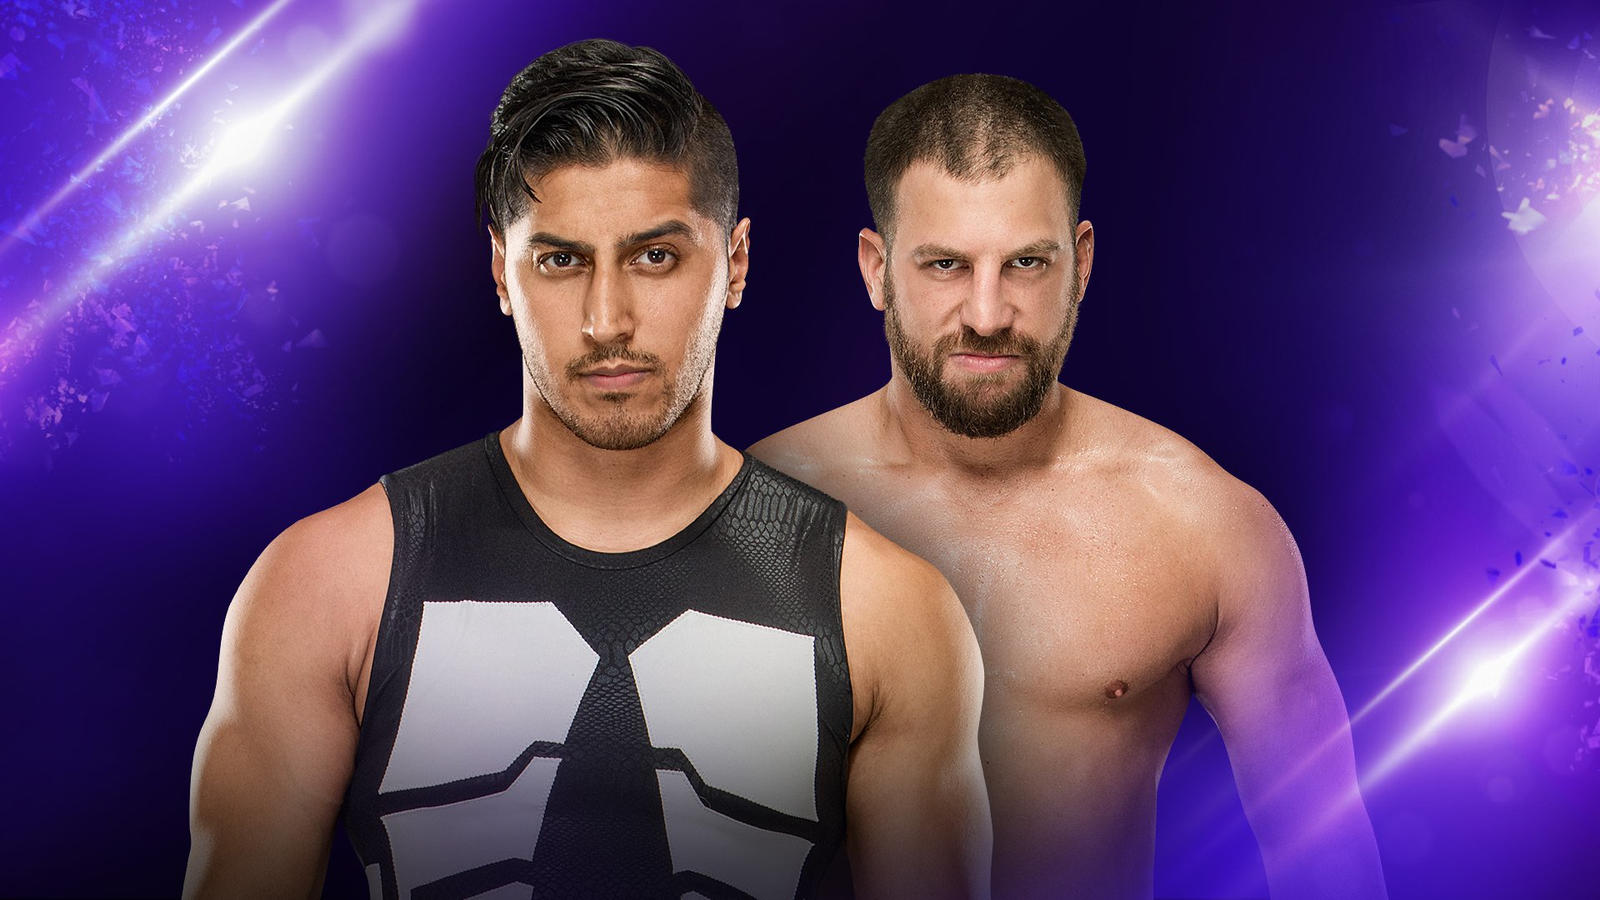 Wwe 205 live preview june 20 2017 can drew gulak ground mustafa ali for good